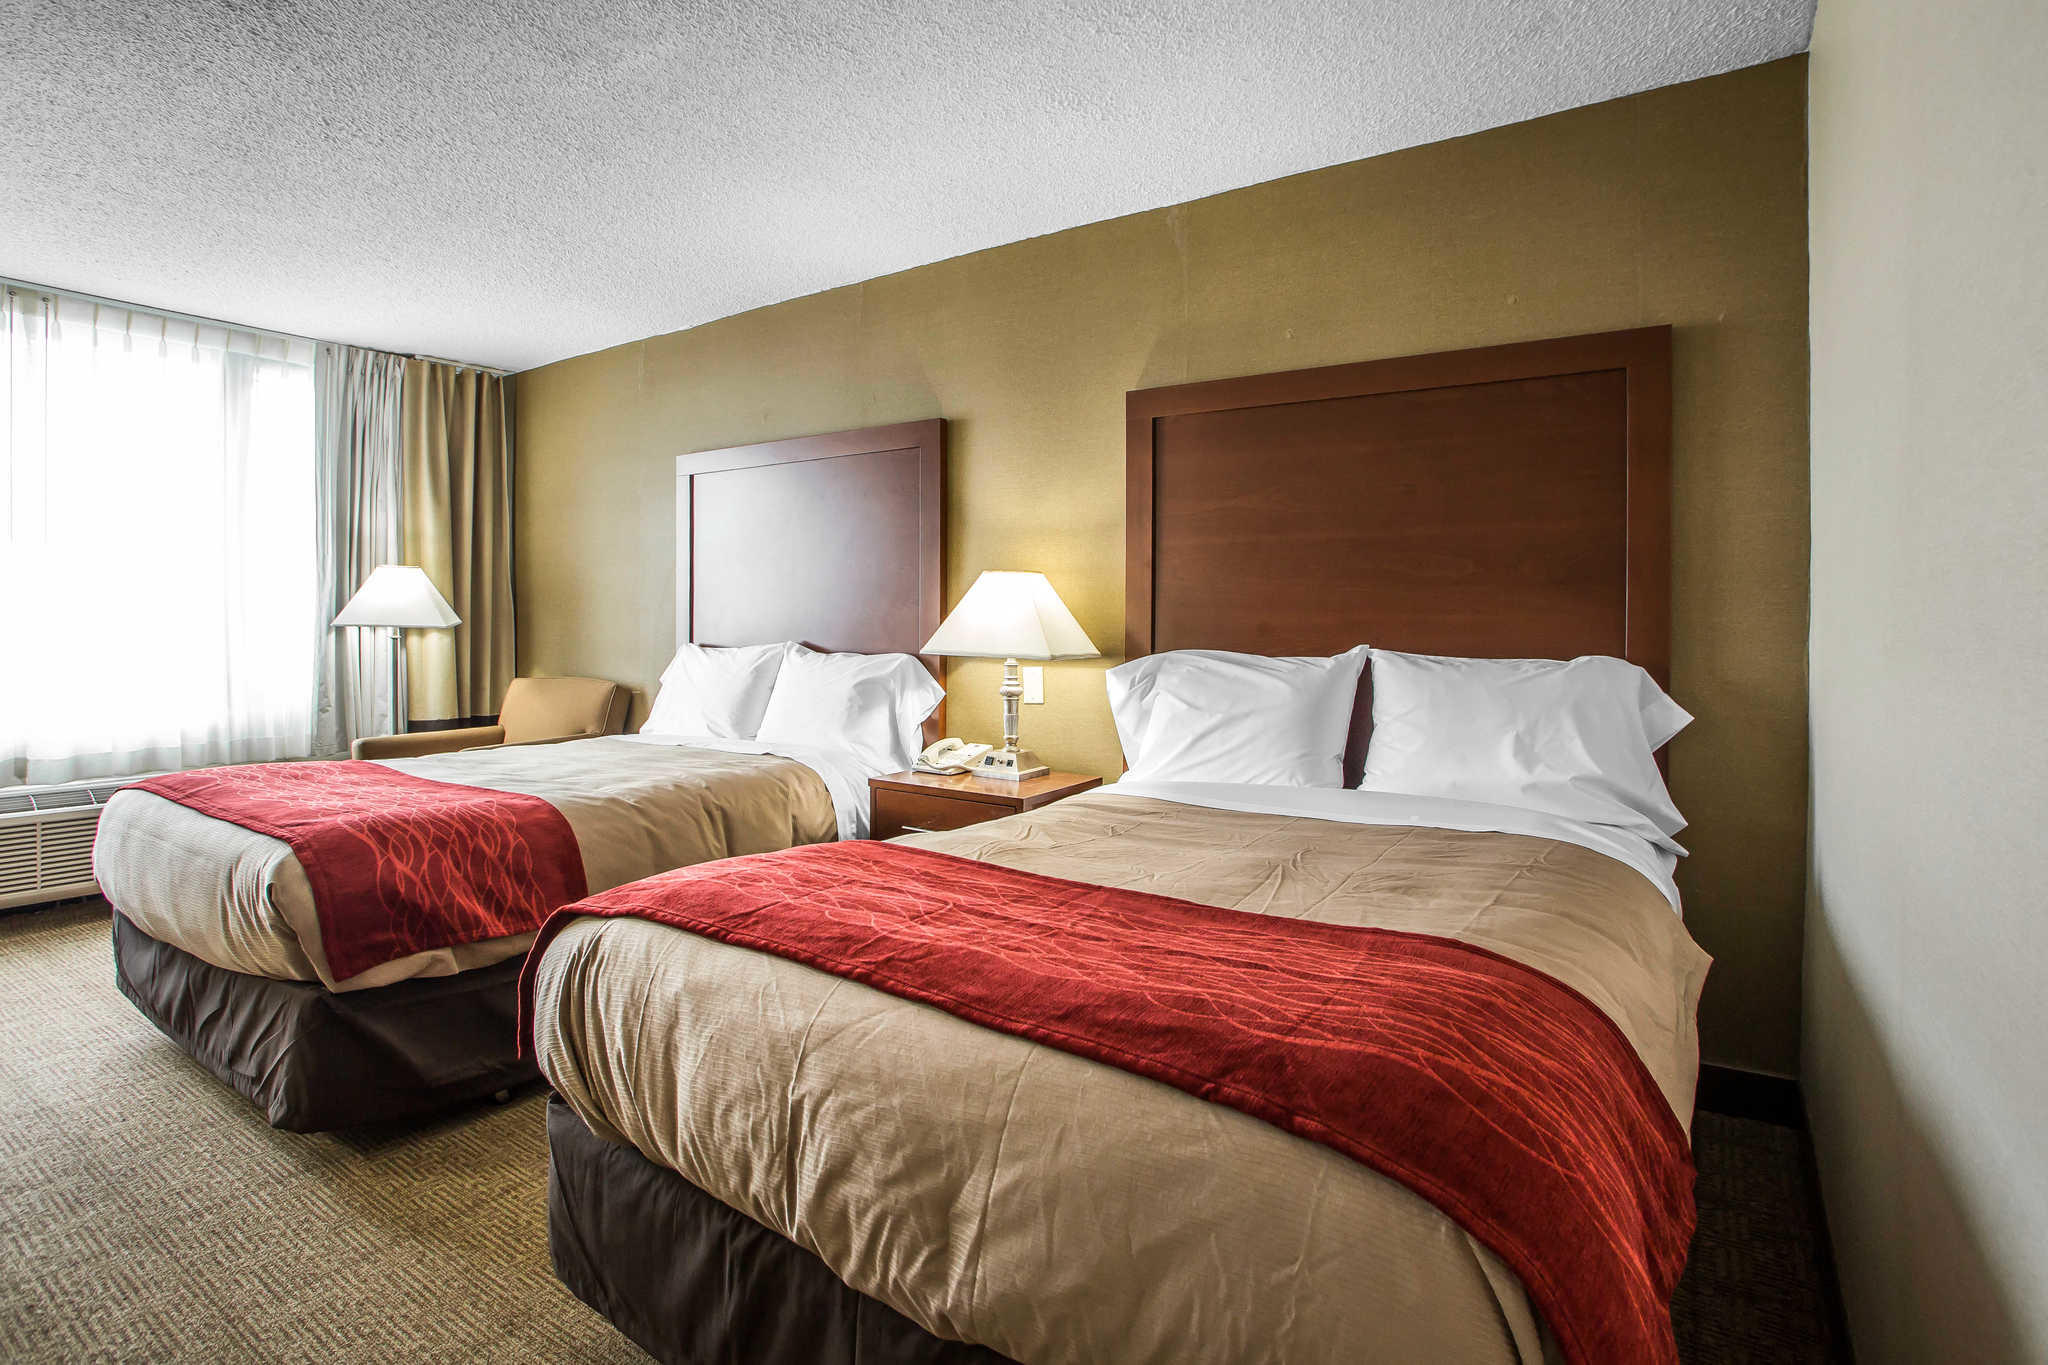 Quality Inn Midway Airport image 9